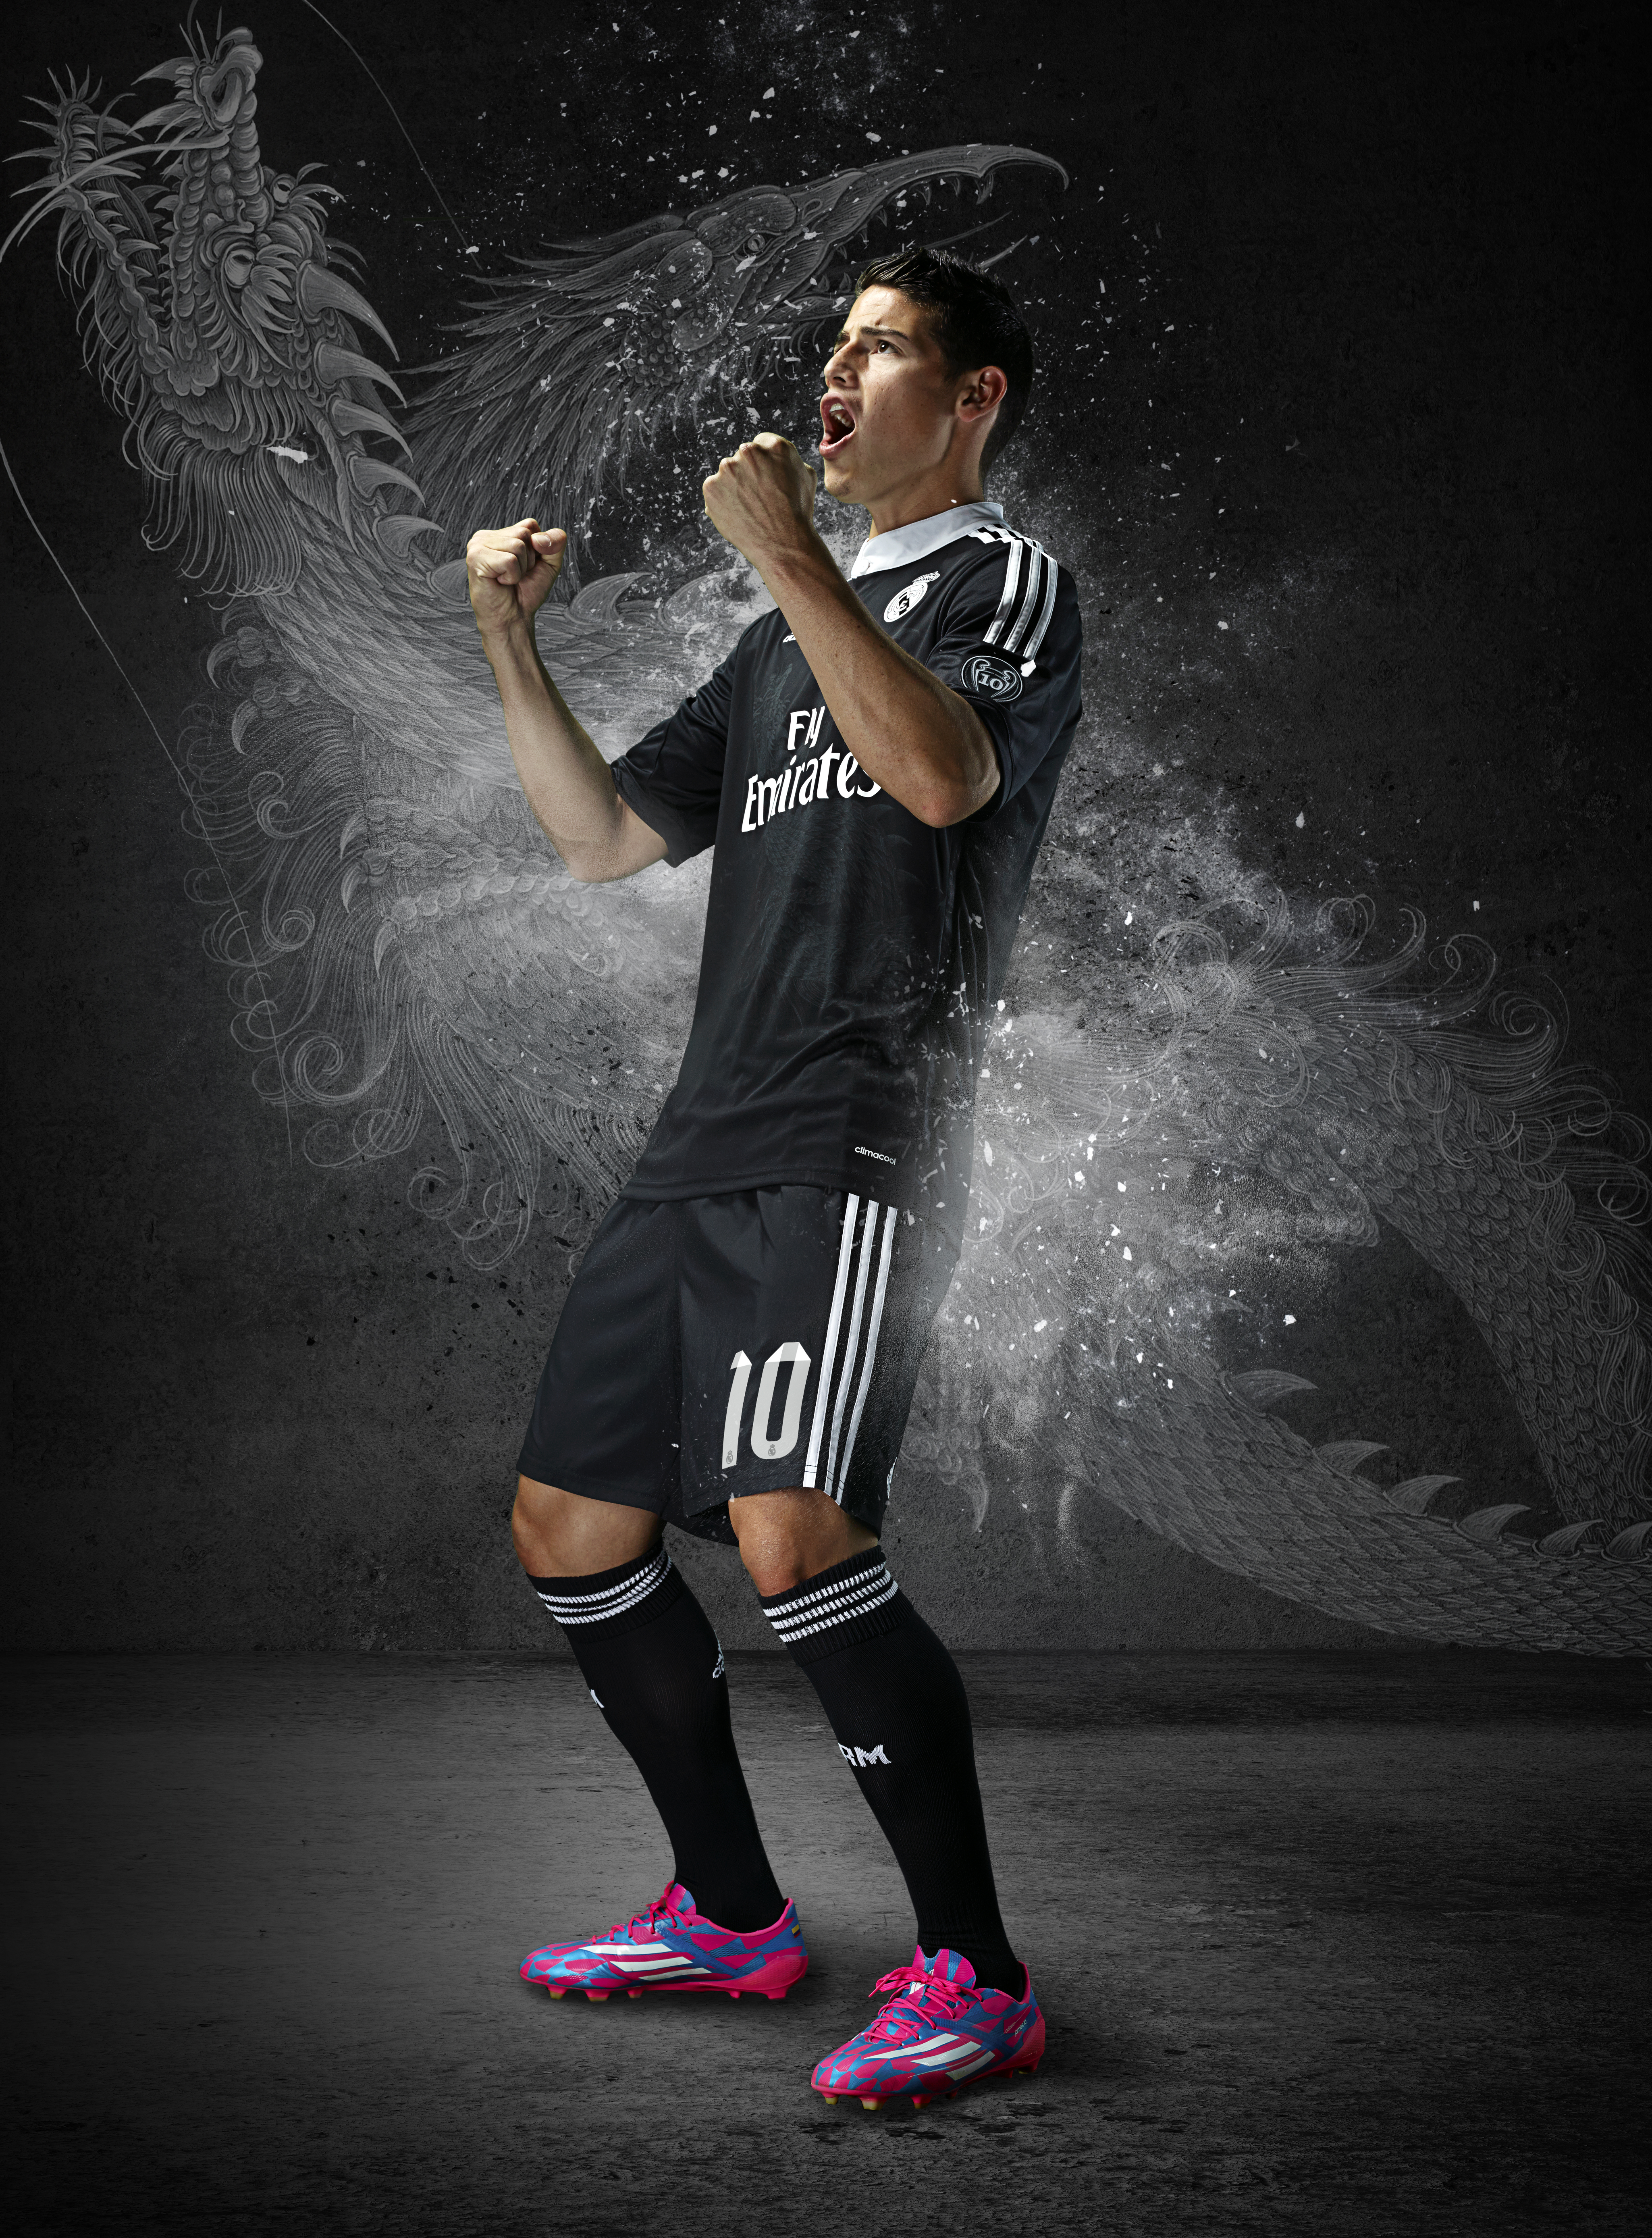 75fcf73fc9a ... Yohji Yamamoto Designs the New adidas Real Madrid Third Kits  JAMESDRAGON. The striking new kit has been designed by Japanese design  revolutionary and ...